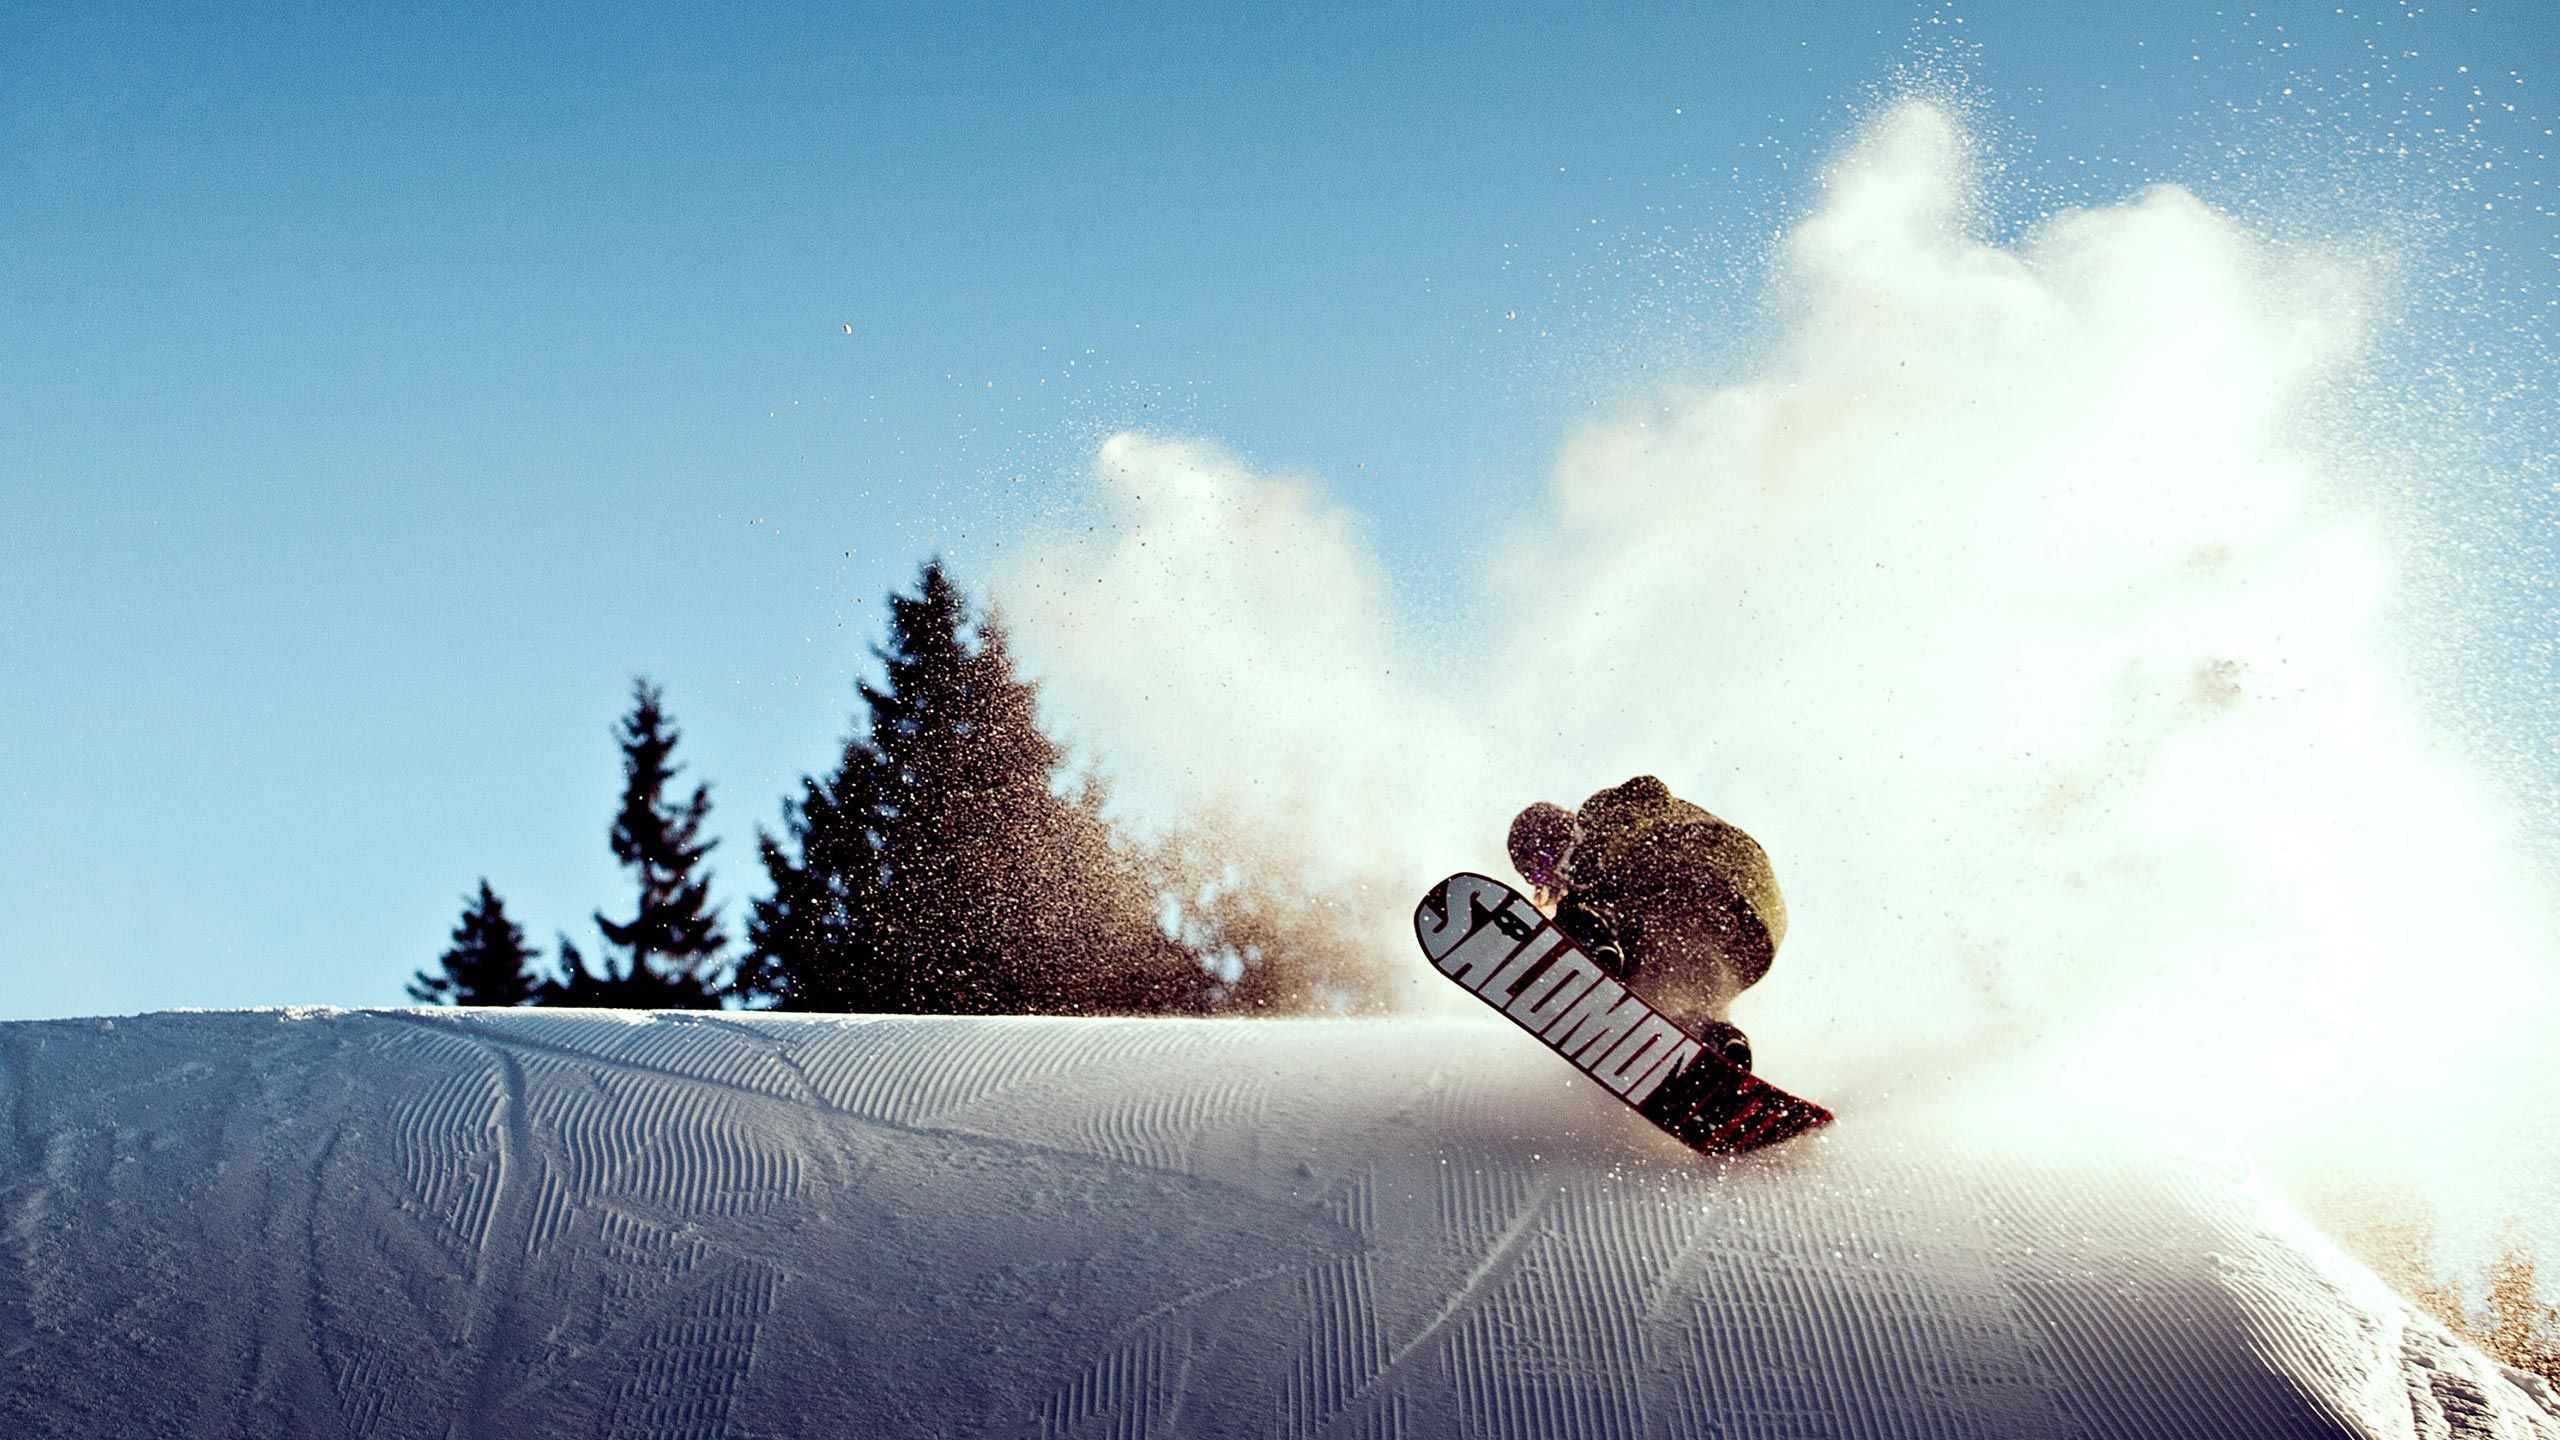 Snowboarding Wallpapers Top Free Snowboarding Backgrounds